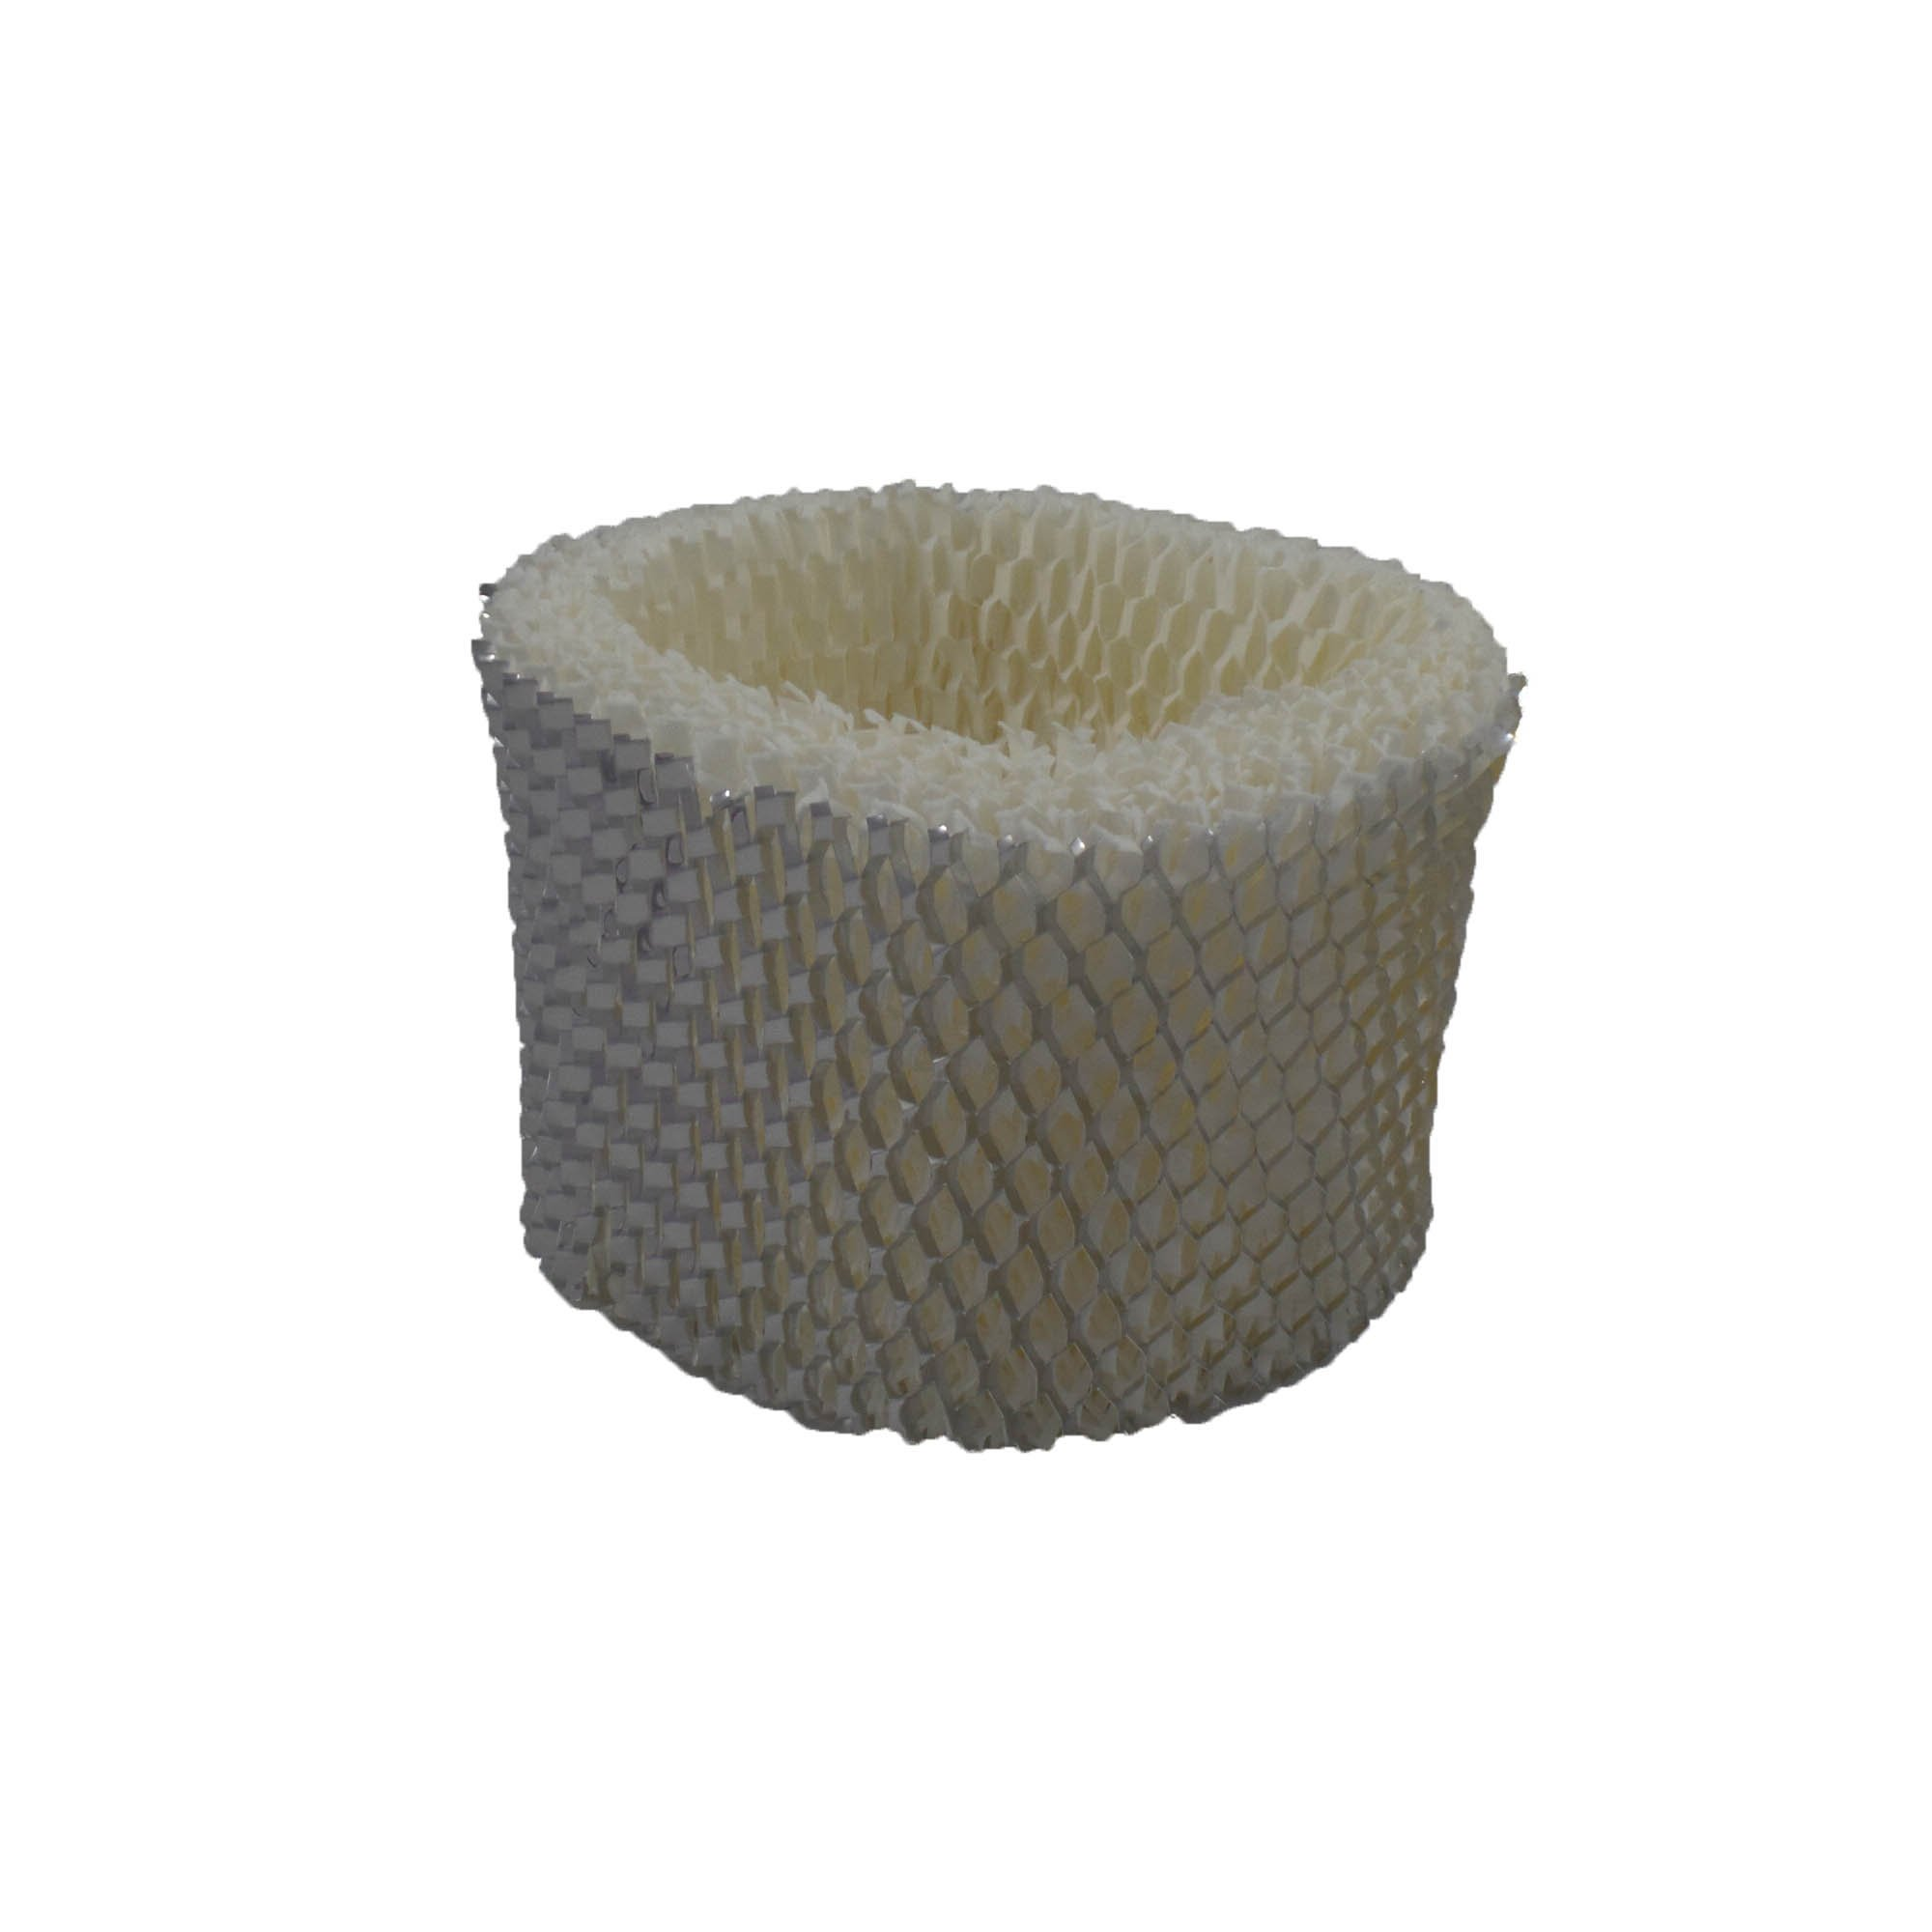 Air Filter Factory Compatible Replacement For Honeywell HCM560, HCM-560, HCM630, HCM-630, HCM631, HCM-631 Humidifier Filter